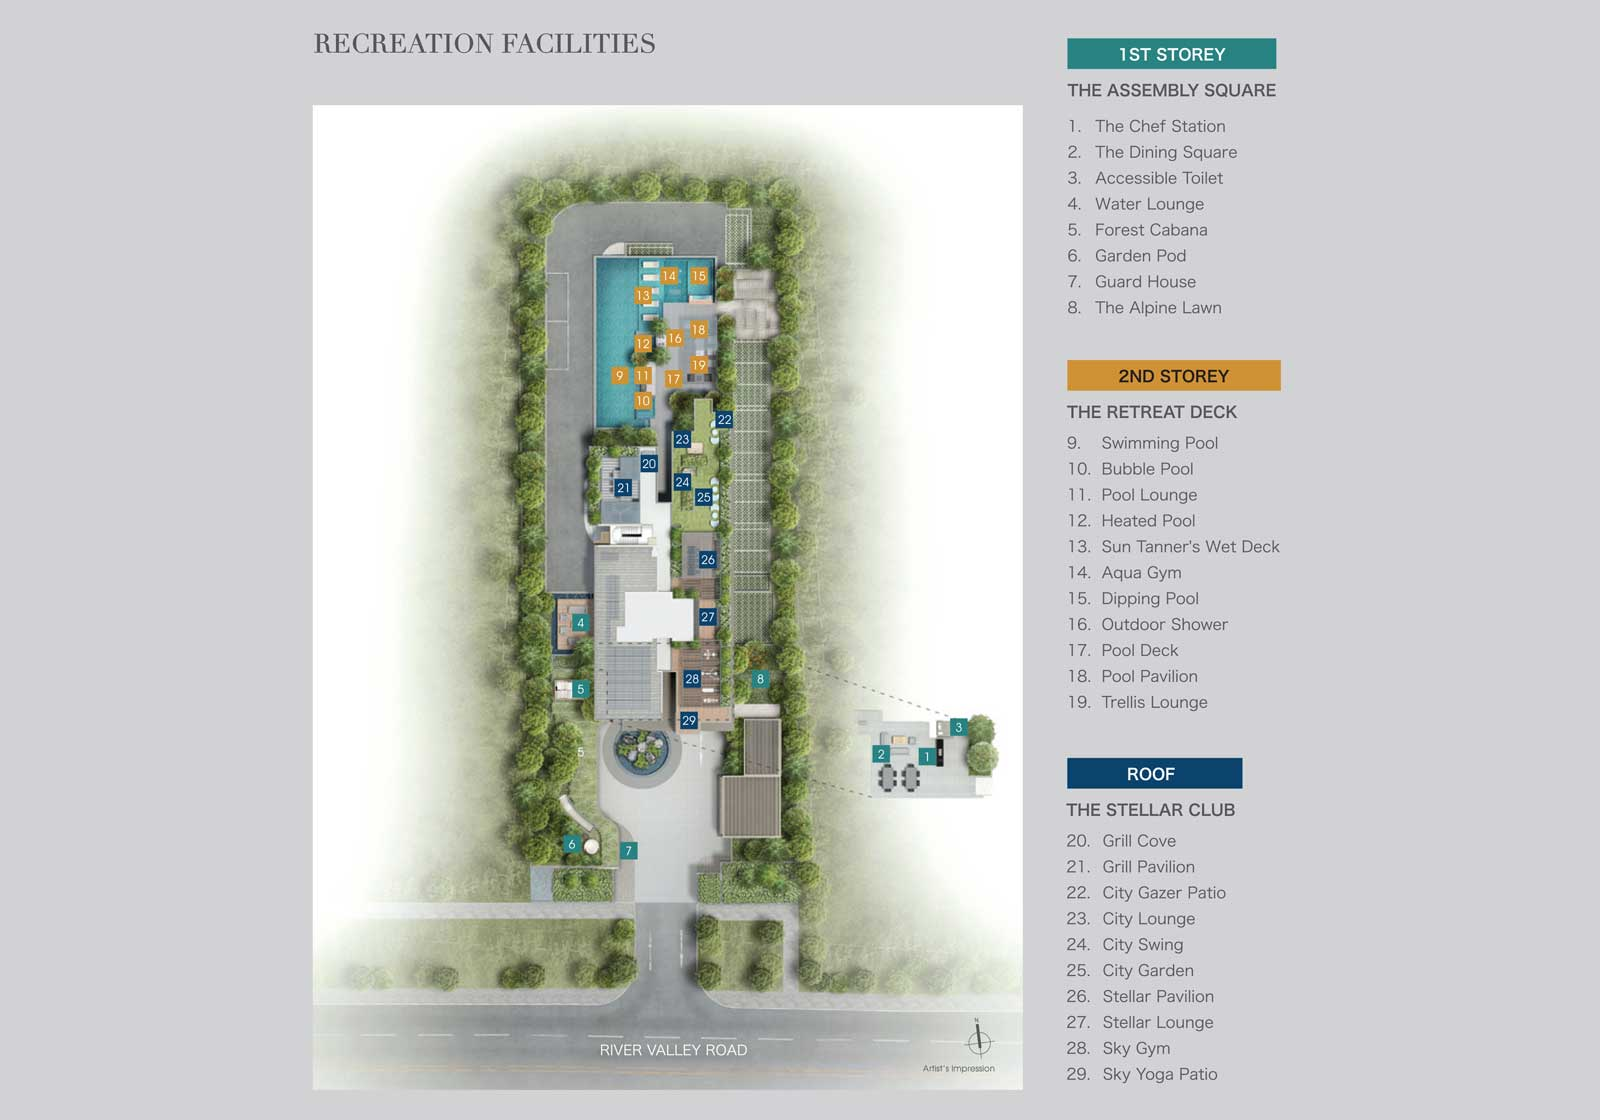 rv-altitude-former-zouk-site-plan-at-river-valley-condominium